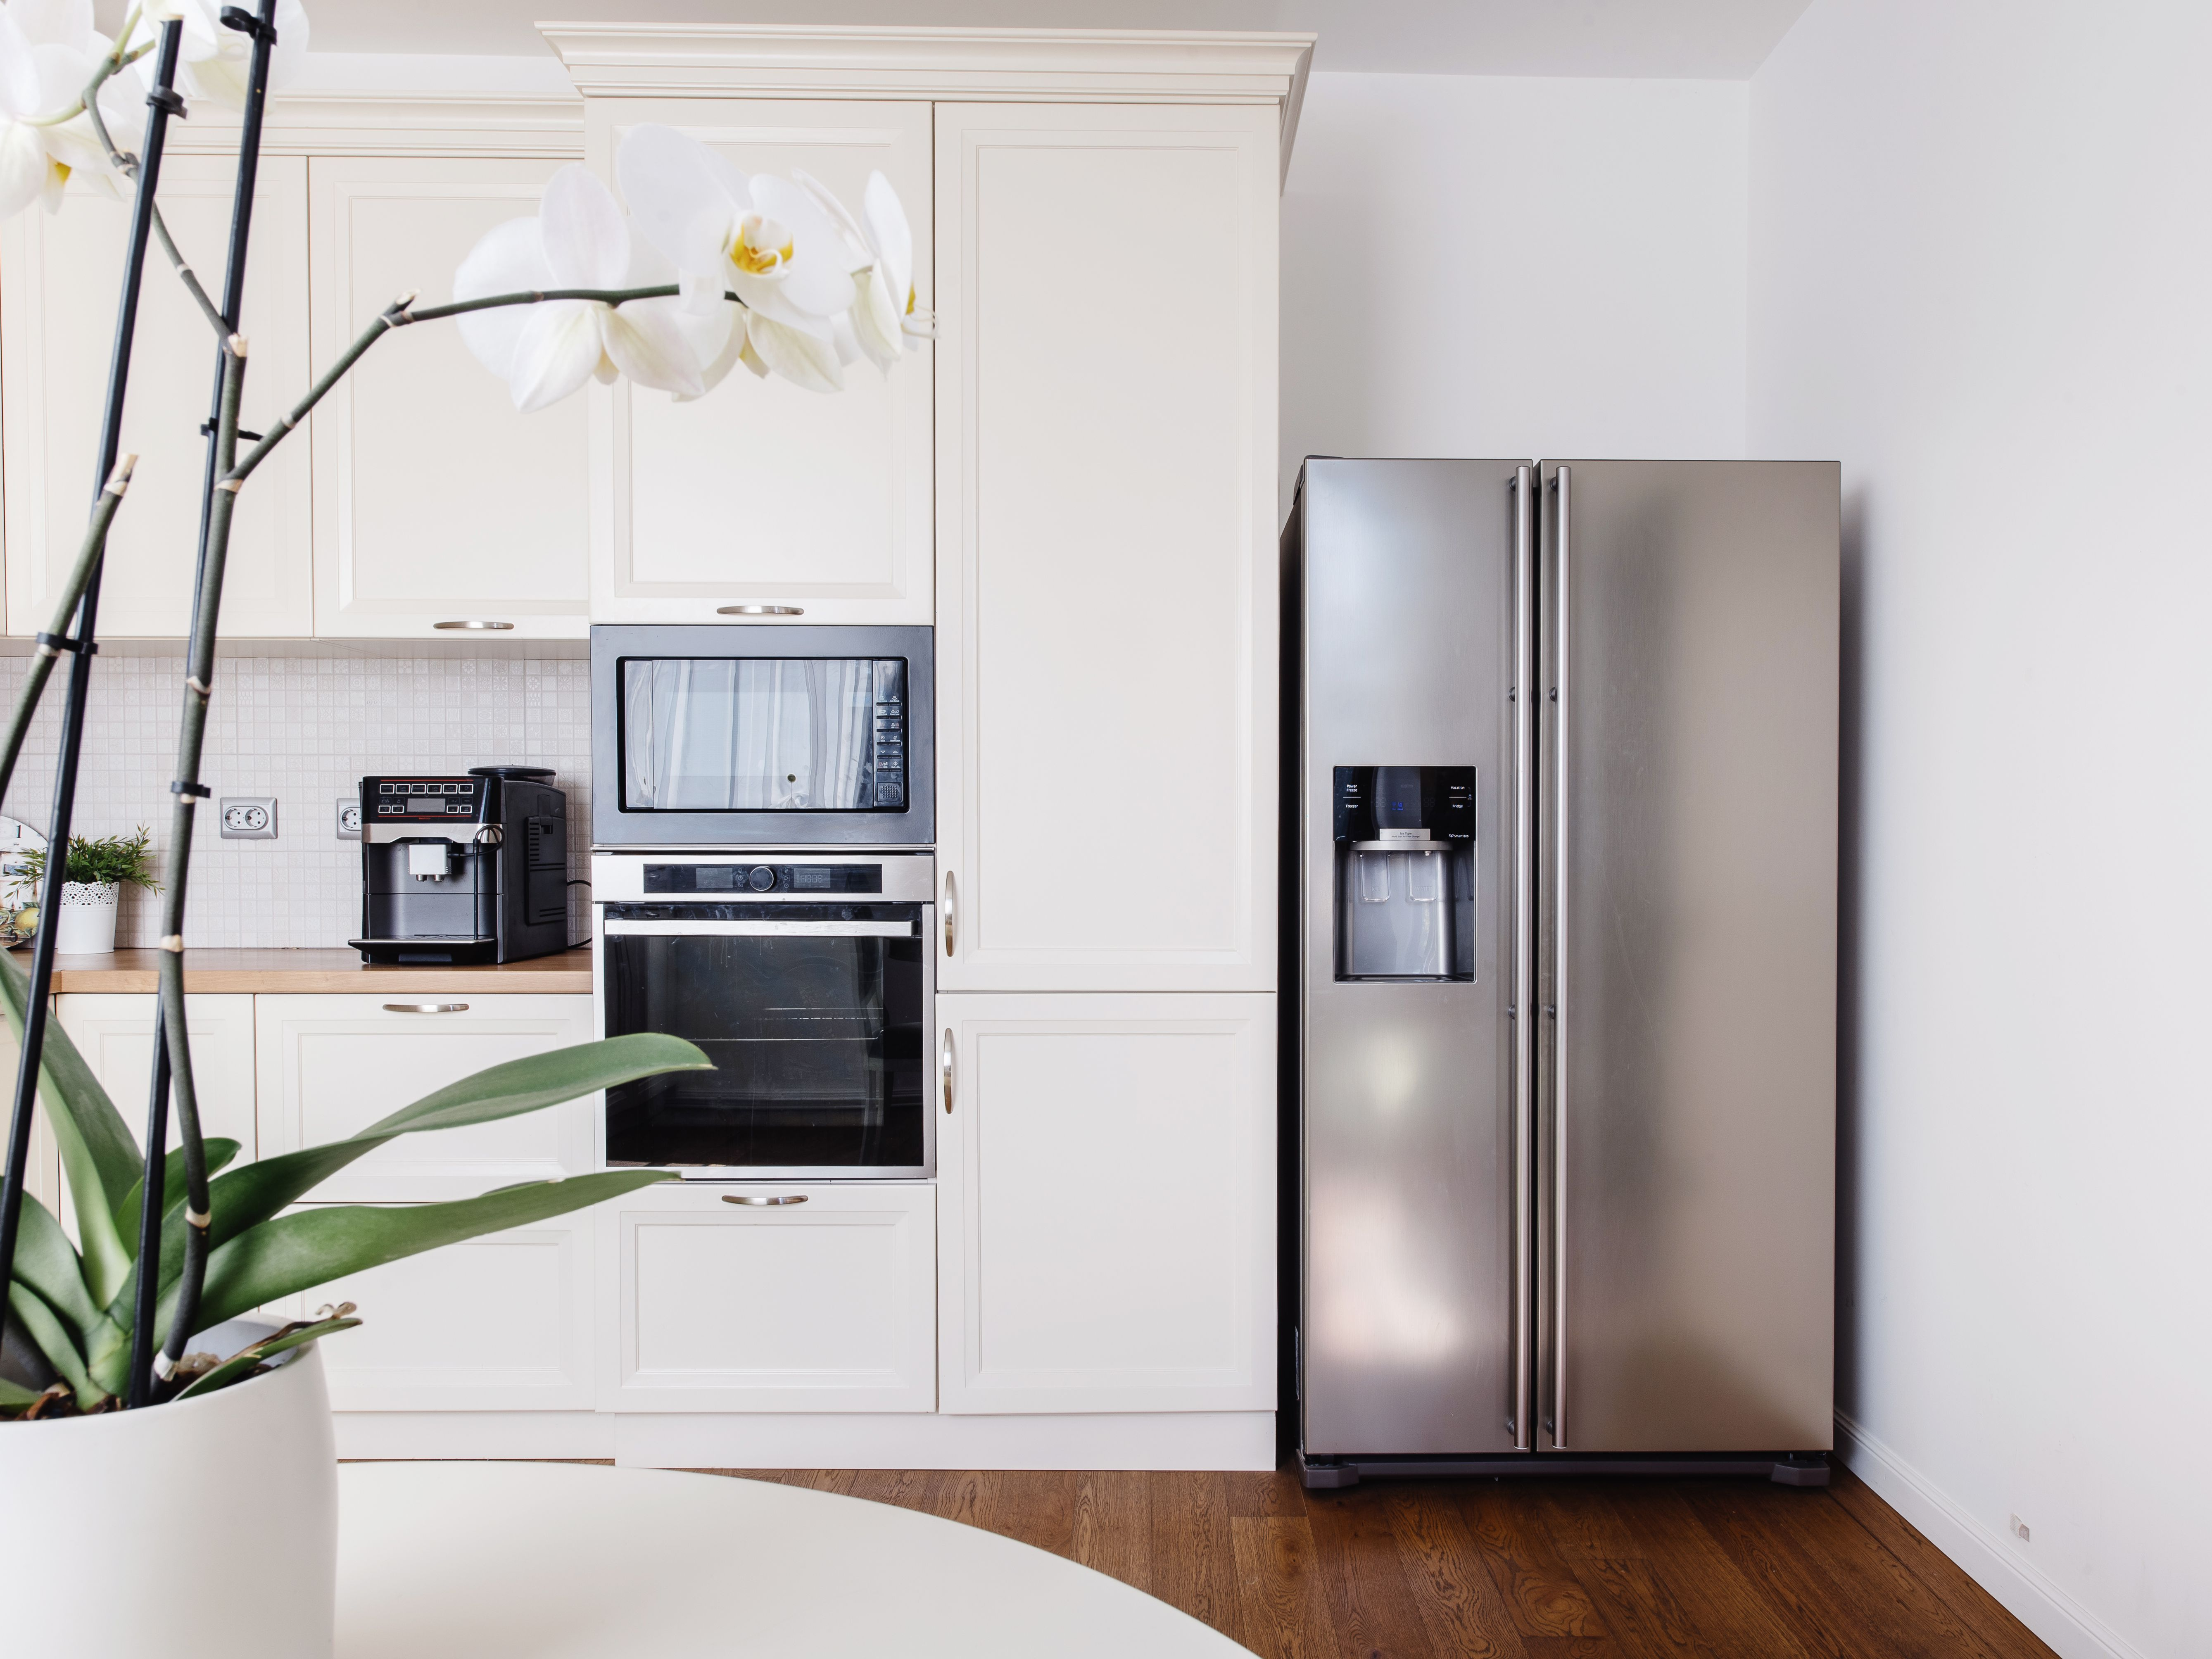 Choosing The Best Refrigerator Style For Your Kitchen